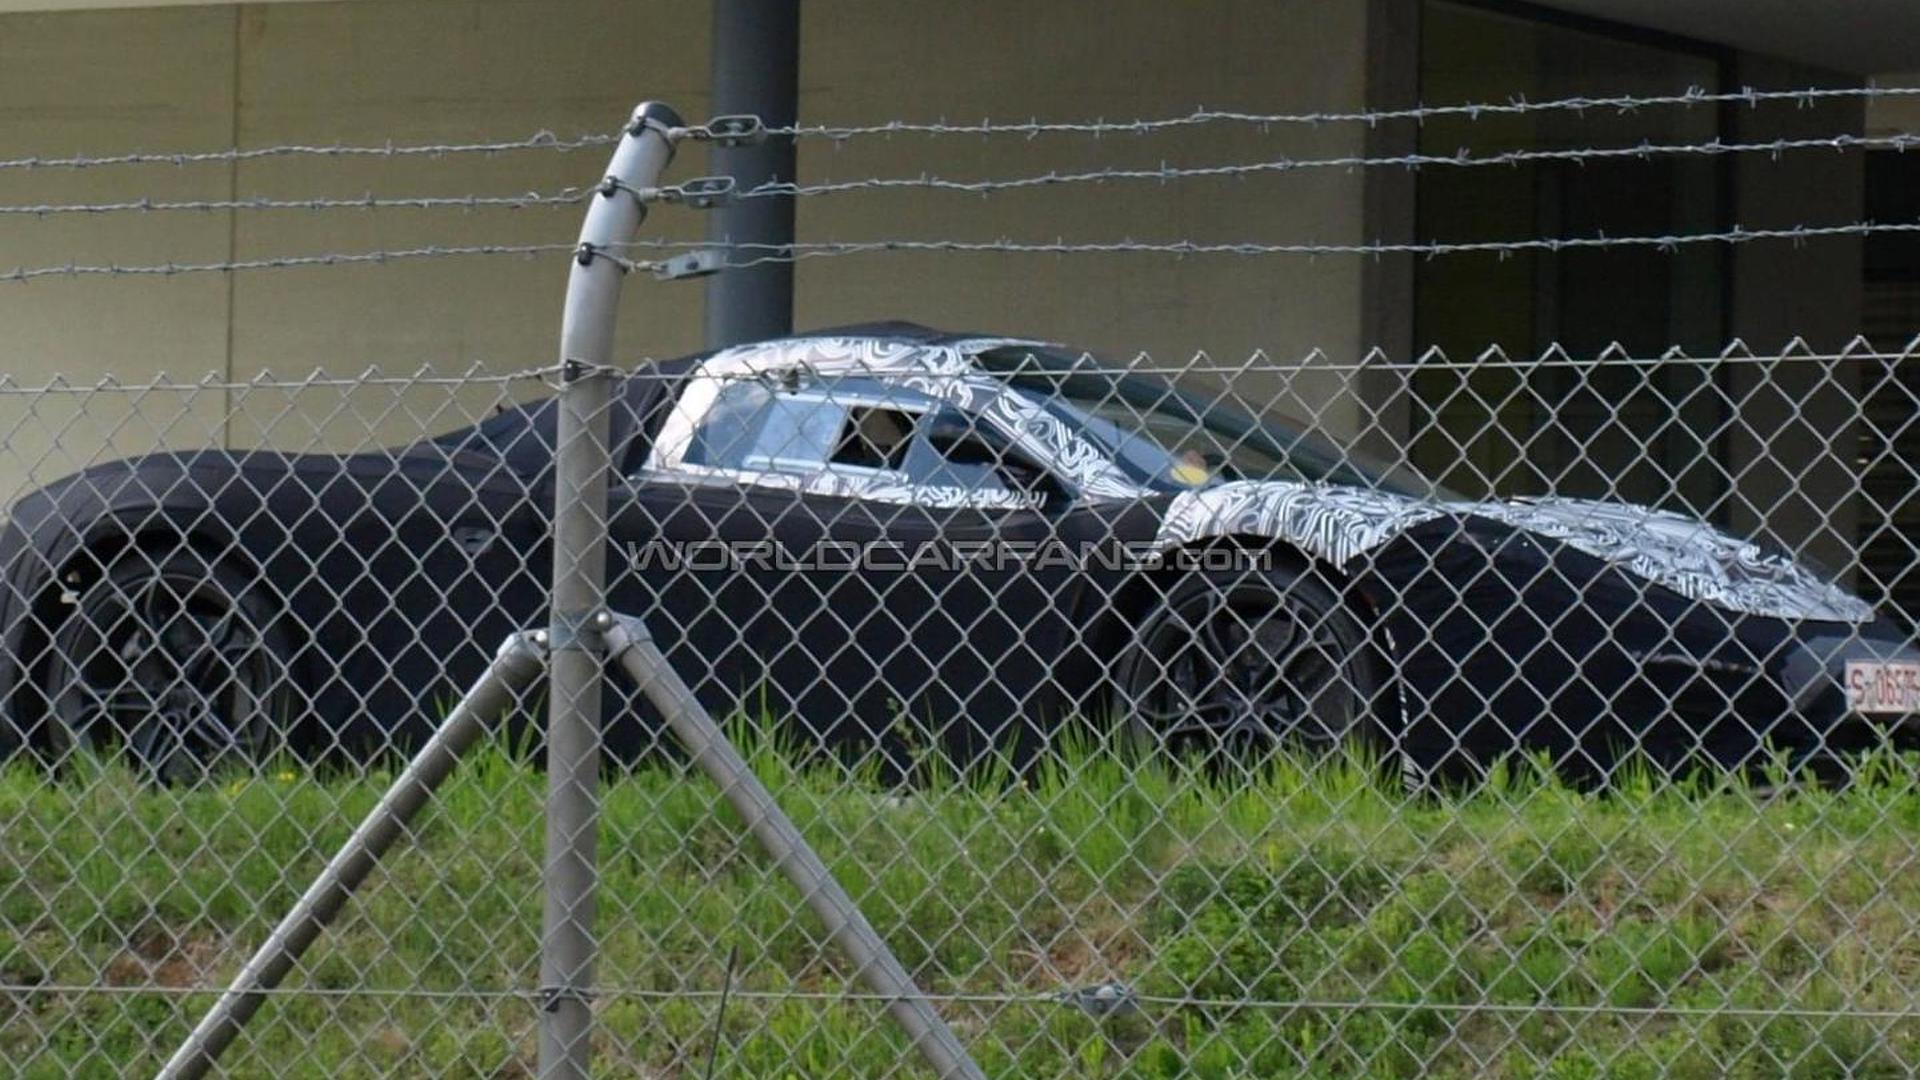 McLaren F1 successor prototype caught for first time